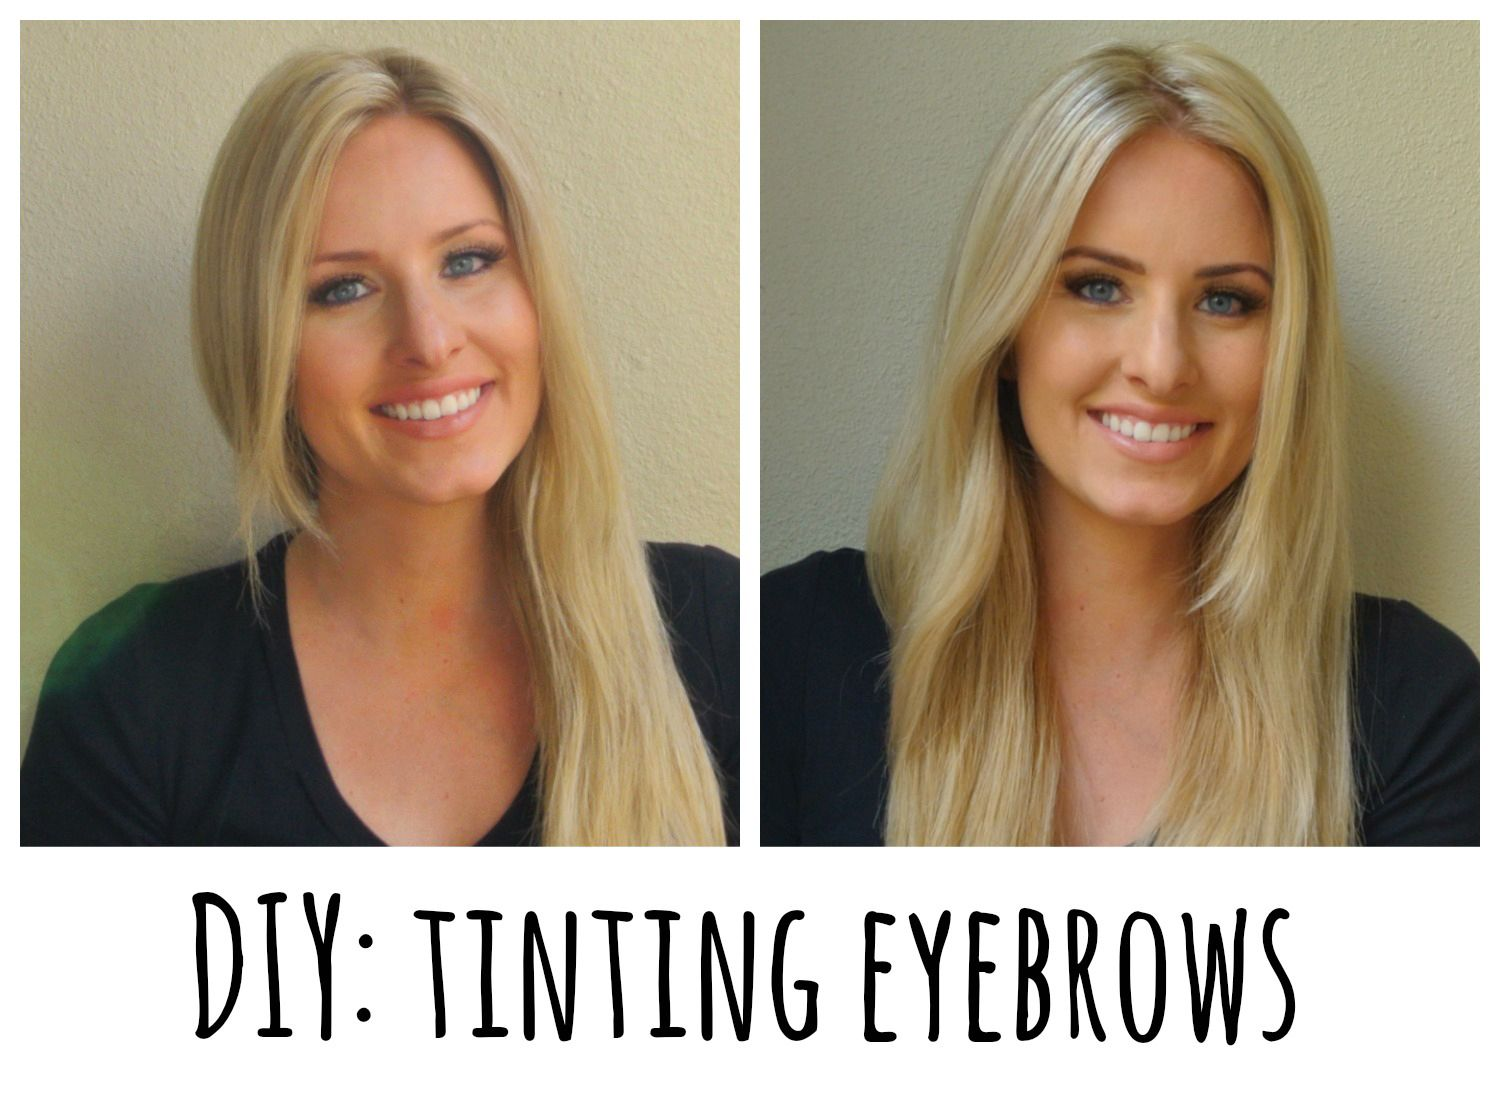 Diy How To Tint Your Eyebrows With Refectocil In 2018 Health